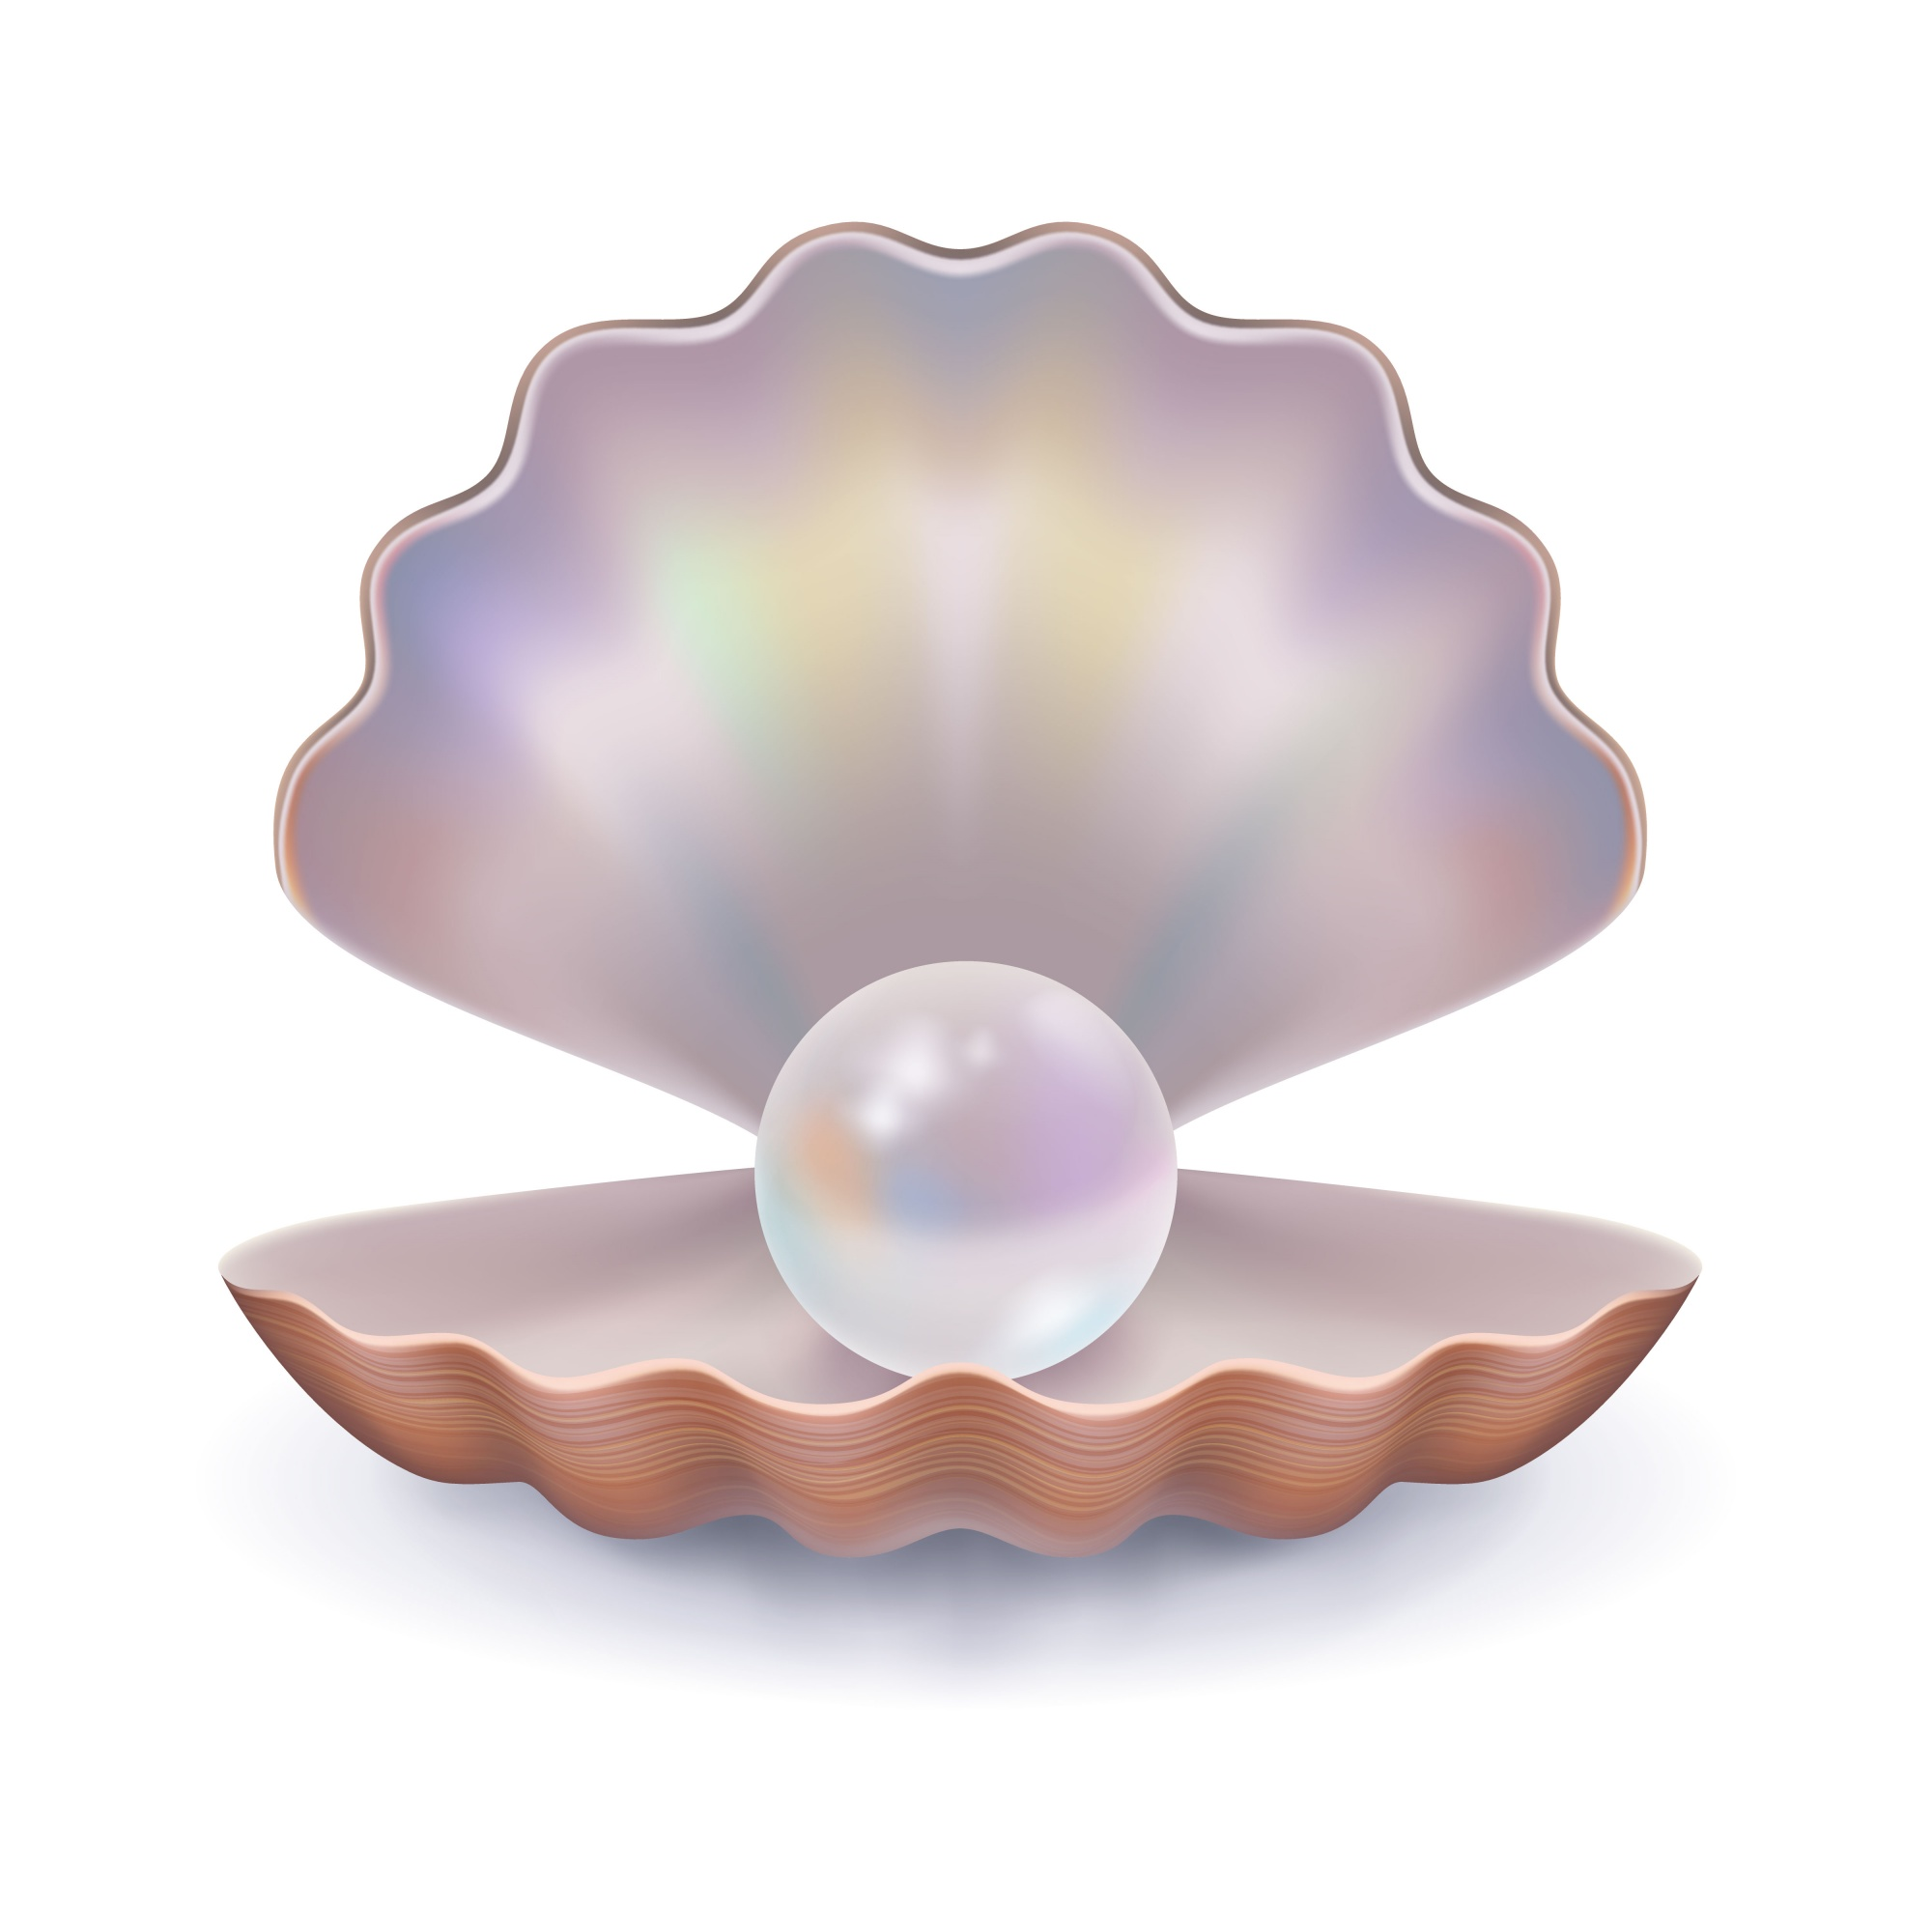 Seashell with a pearl